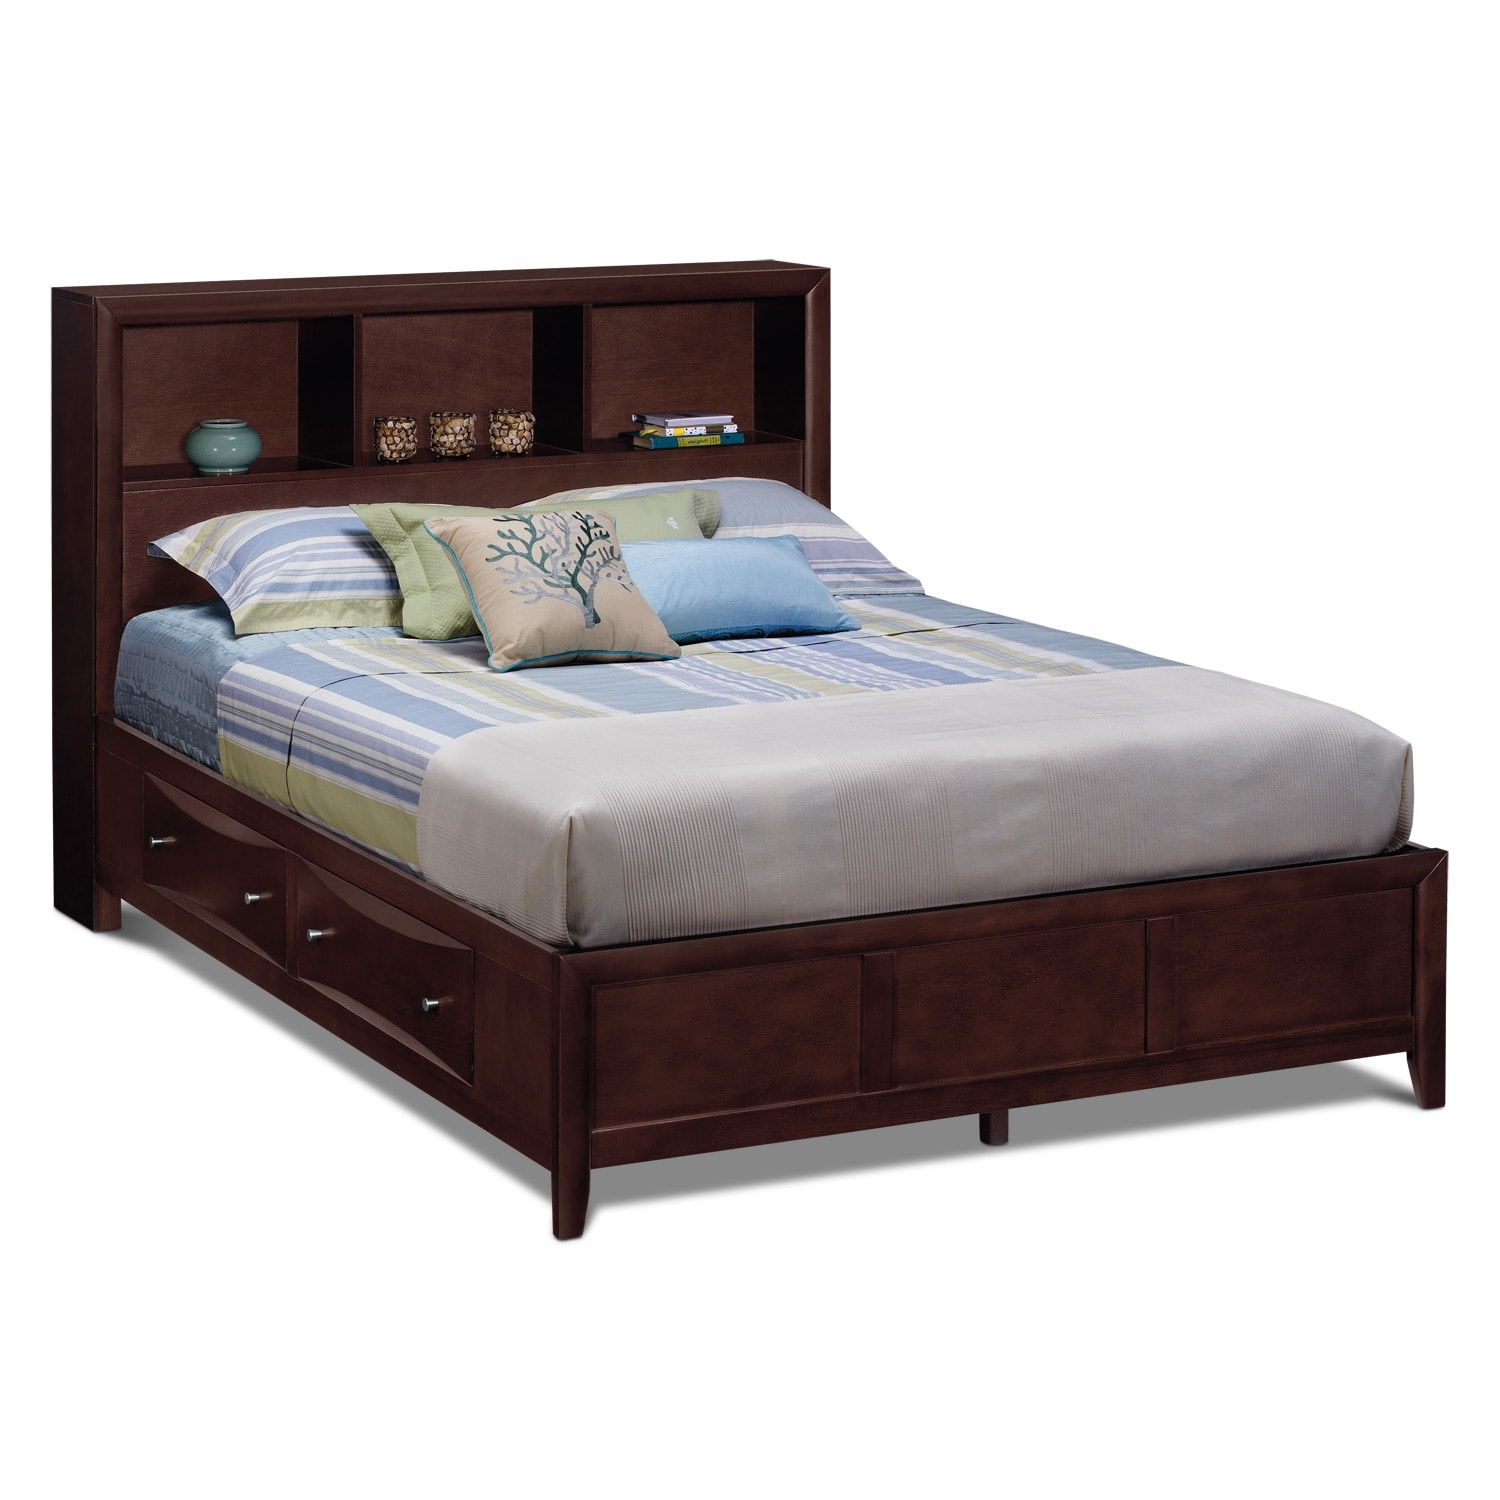 clarion bedroom king wall bed value city furniture